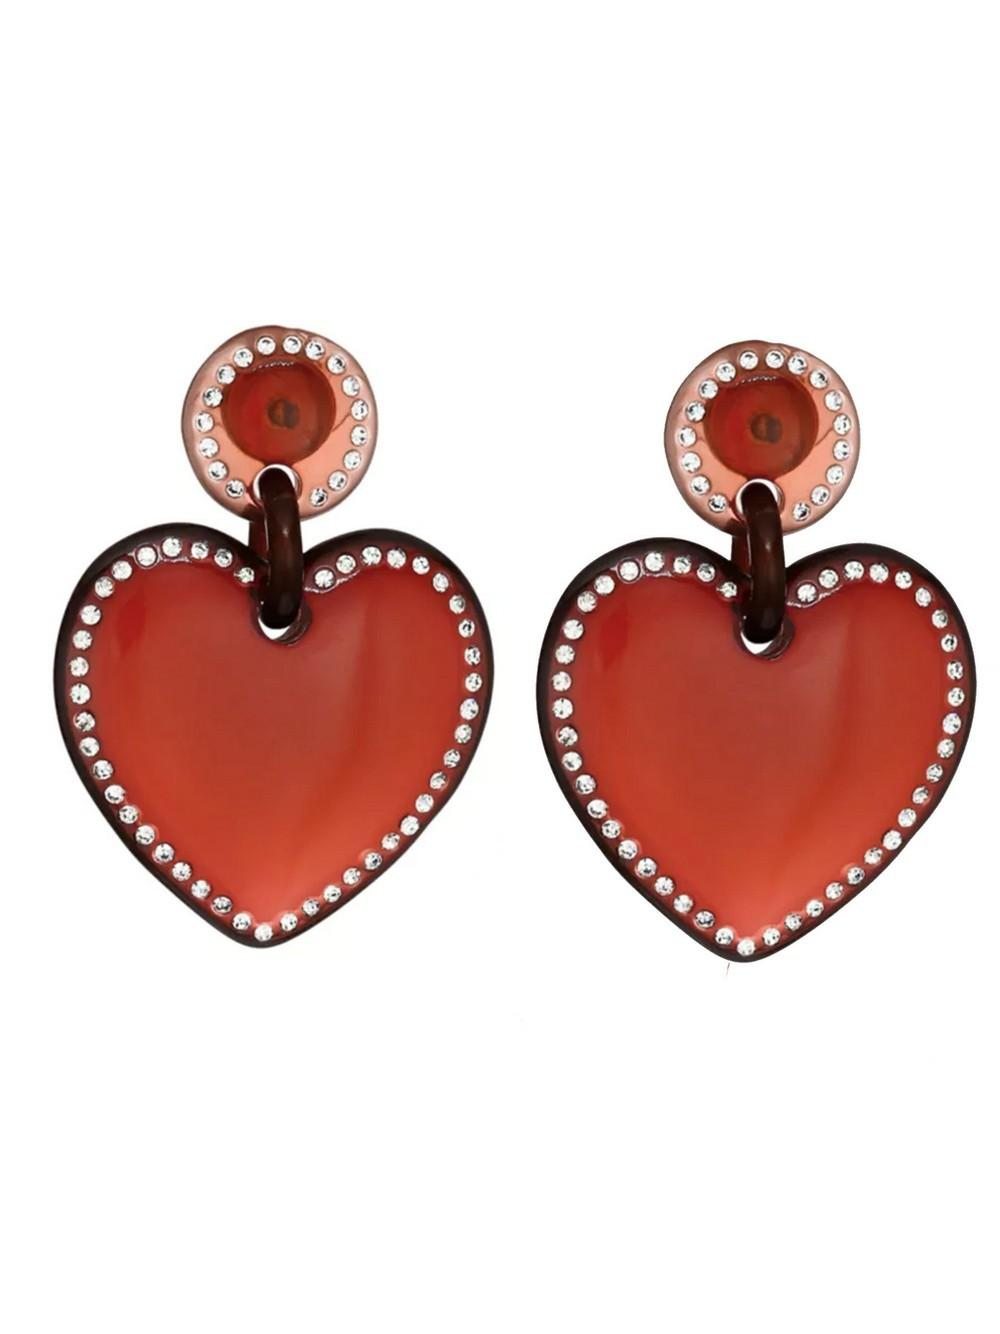 Jeweled Stitched Heart Earrings Item # LS0966RB